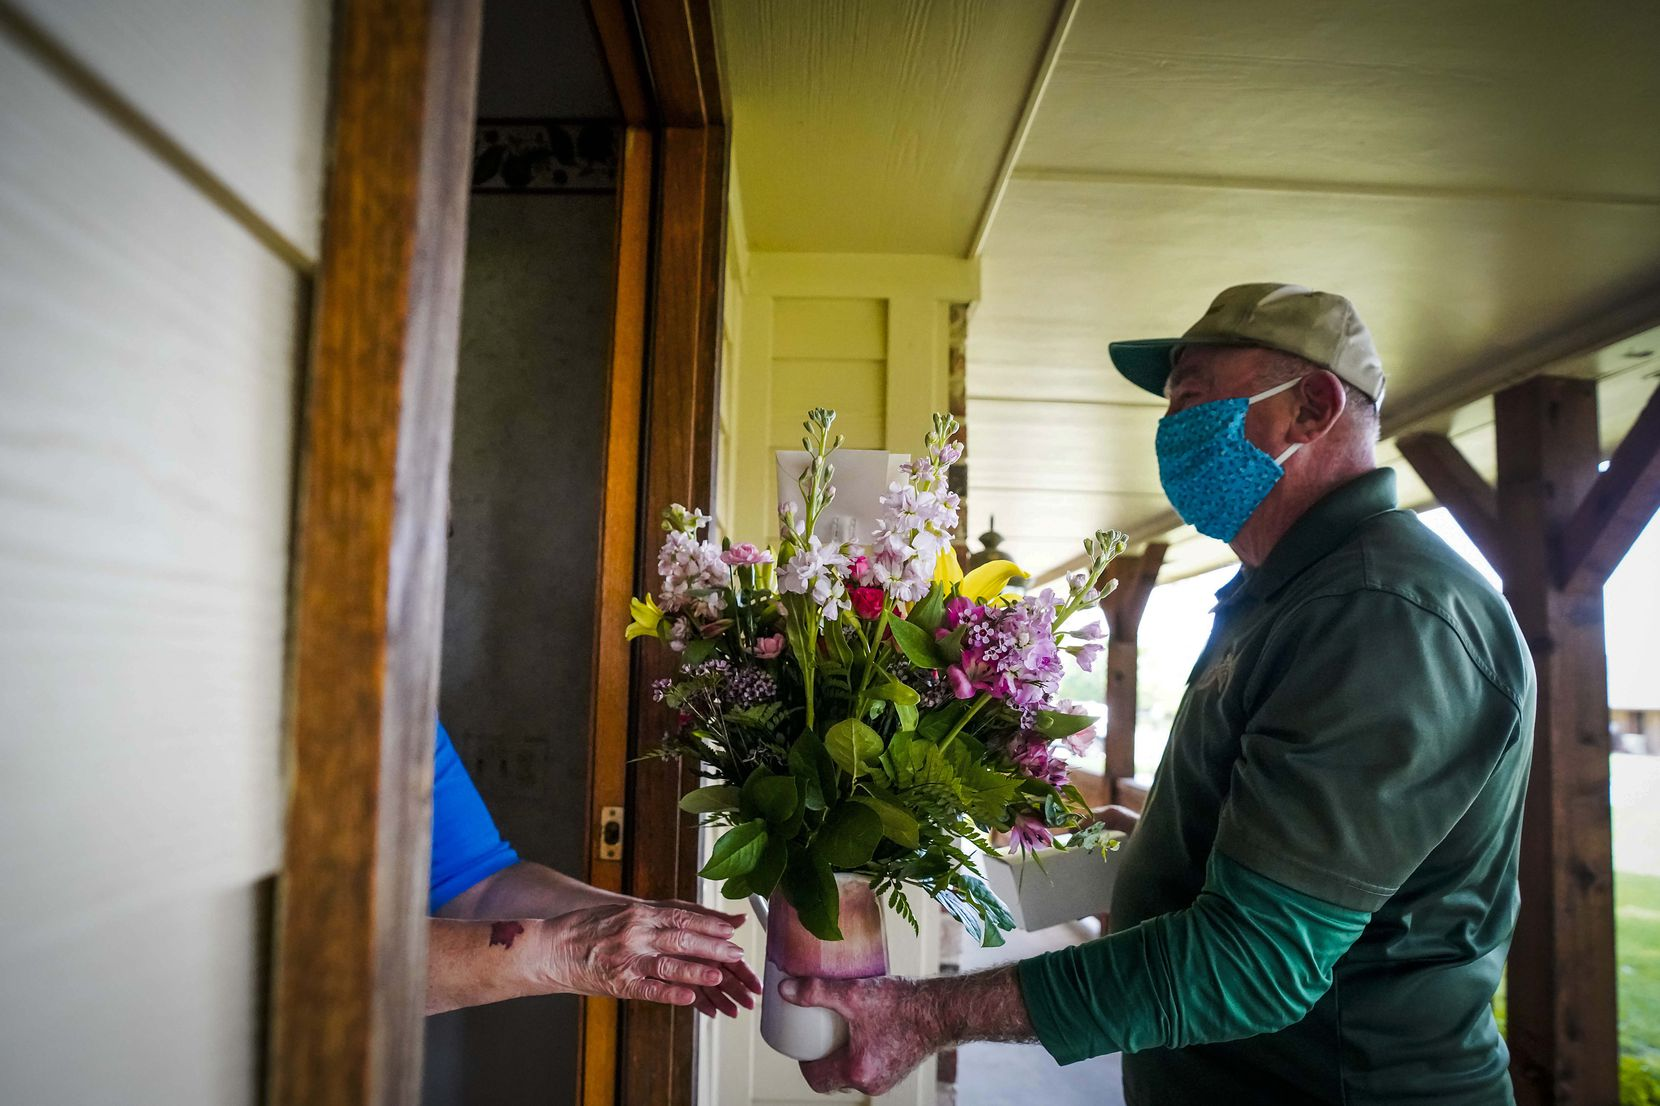 """Emmett Conoly of McShan Florist made a flower delivery for Mother's Day in Heath on May 9, 2020. Conoly, who spent 32 years as a Dallas firefighter, has been delivering flowers since 2006 and said he enjoys being able to help connect people to their loved ones. """"That's the main thing, I think, they are getting something from somebody who is thinking about them, it makes them feel good. It feels good to be part of it."""" McShan employs 17 regular delivery drivers and added 45 temporary drivers for Mother's Day."""